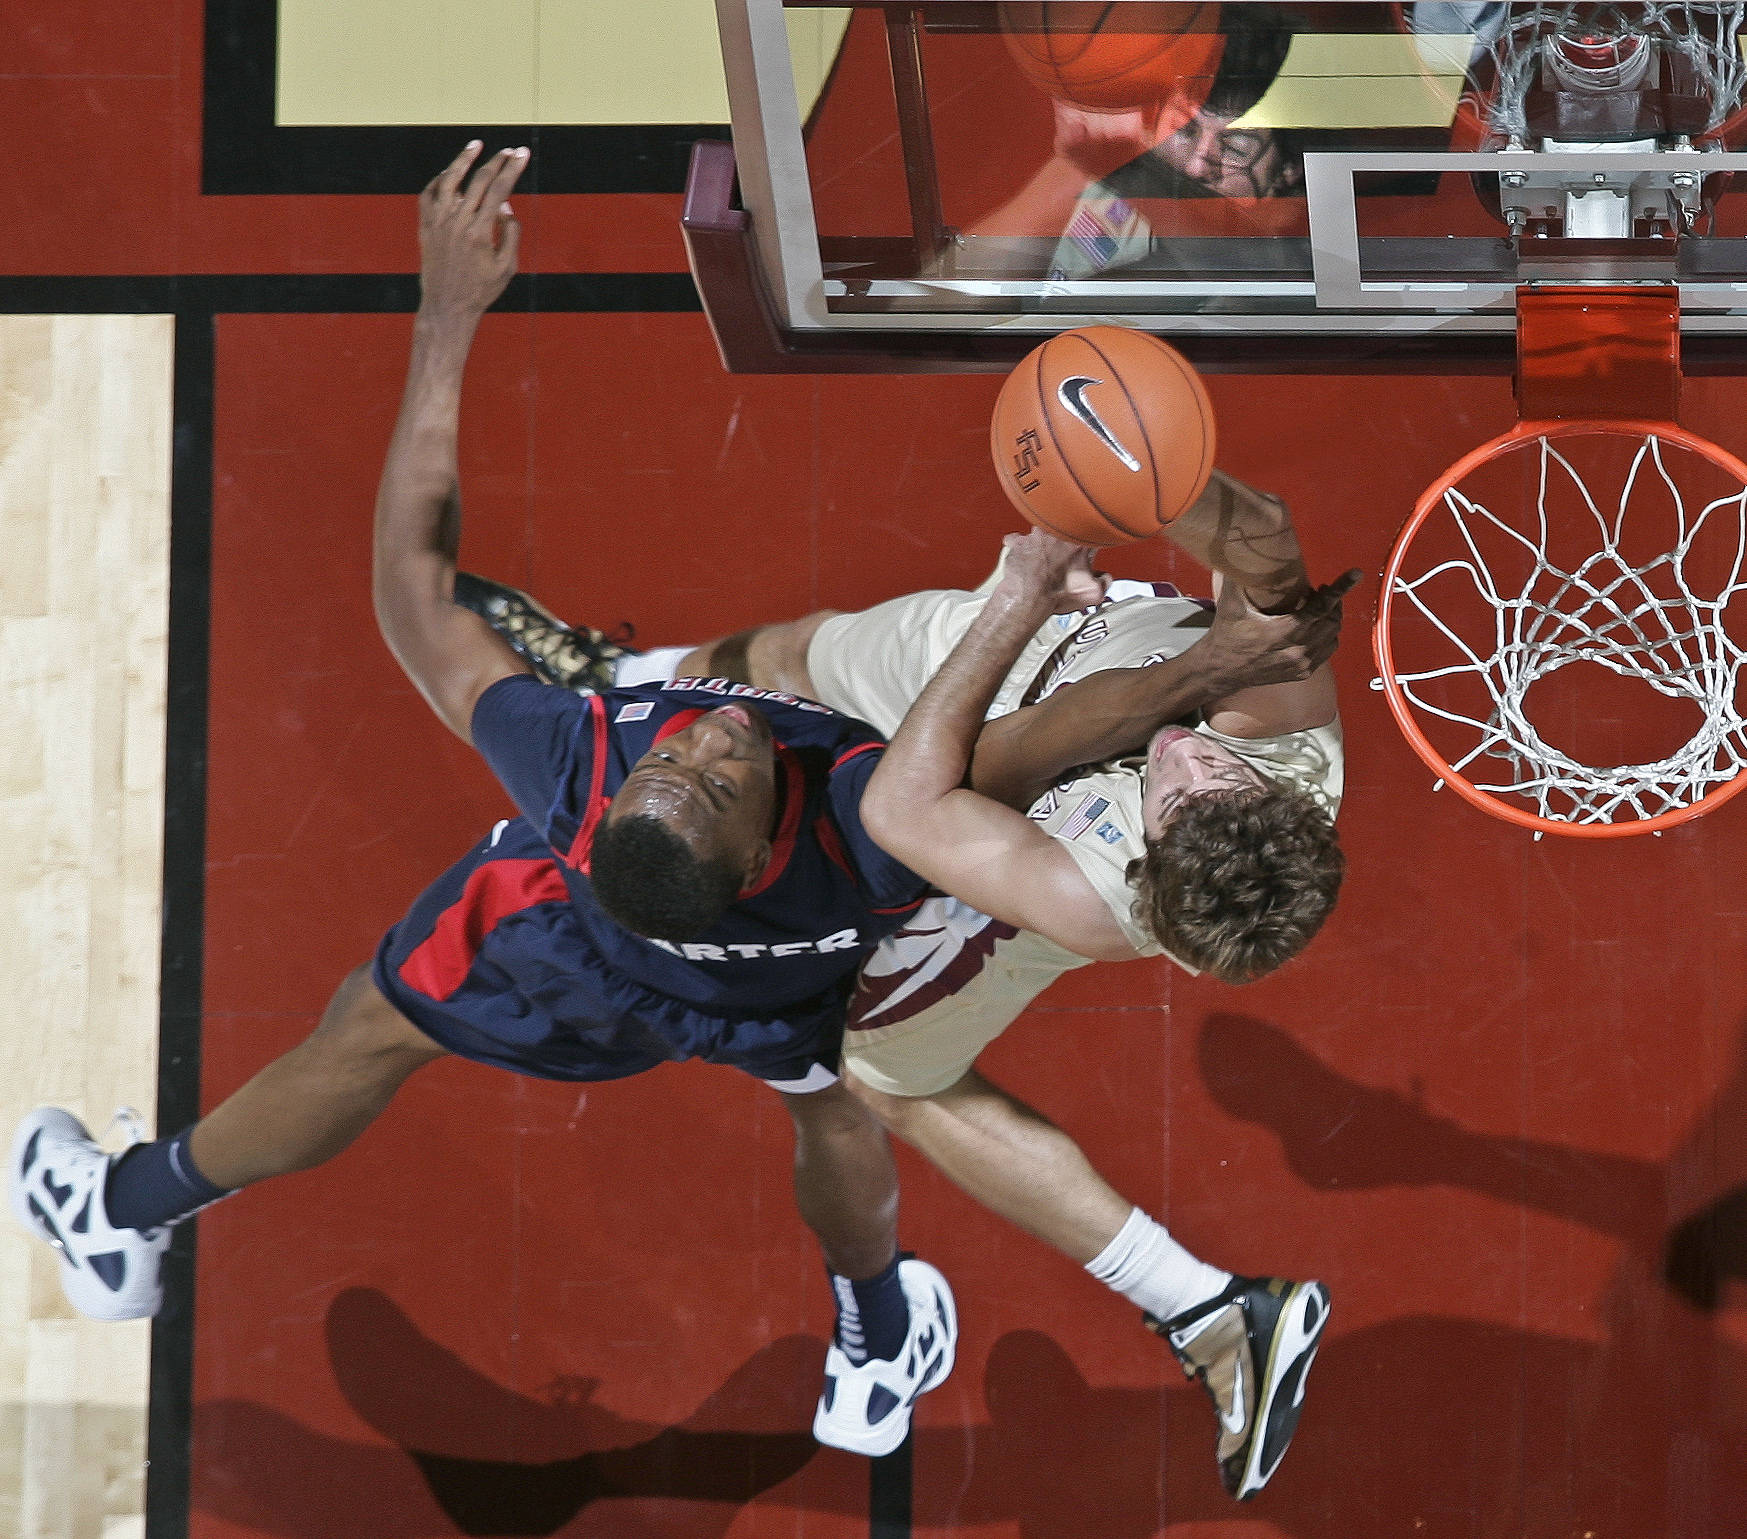 Florida State guard Luke Loucks, right, draws contact from South Alabama forward Javier Carter. (AP Photo/Phil Sears)